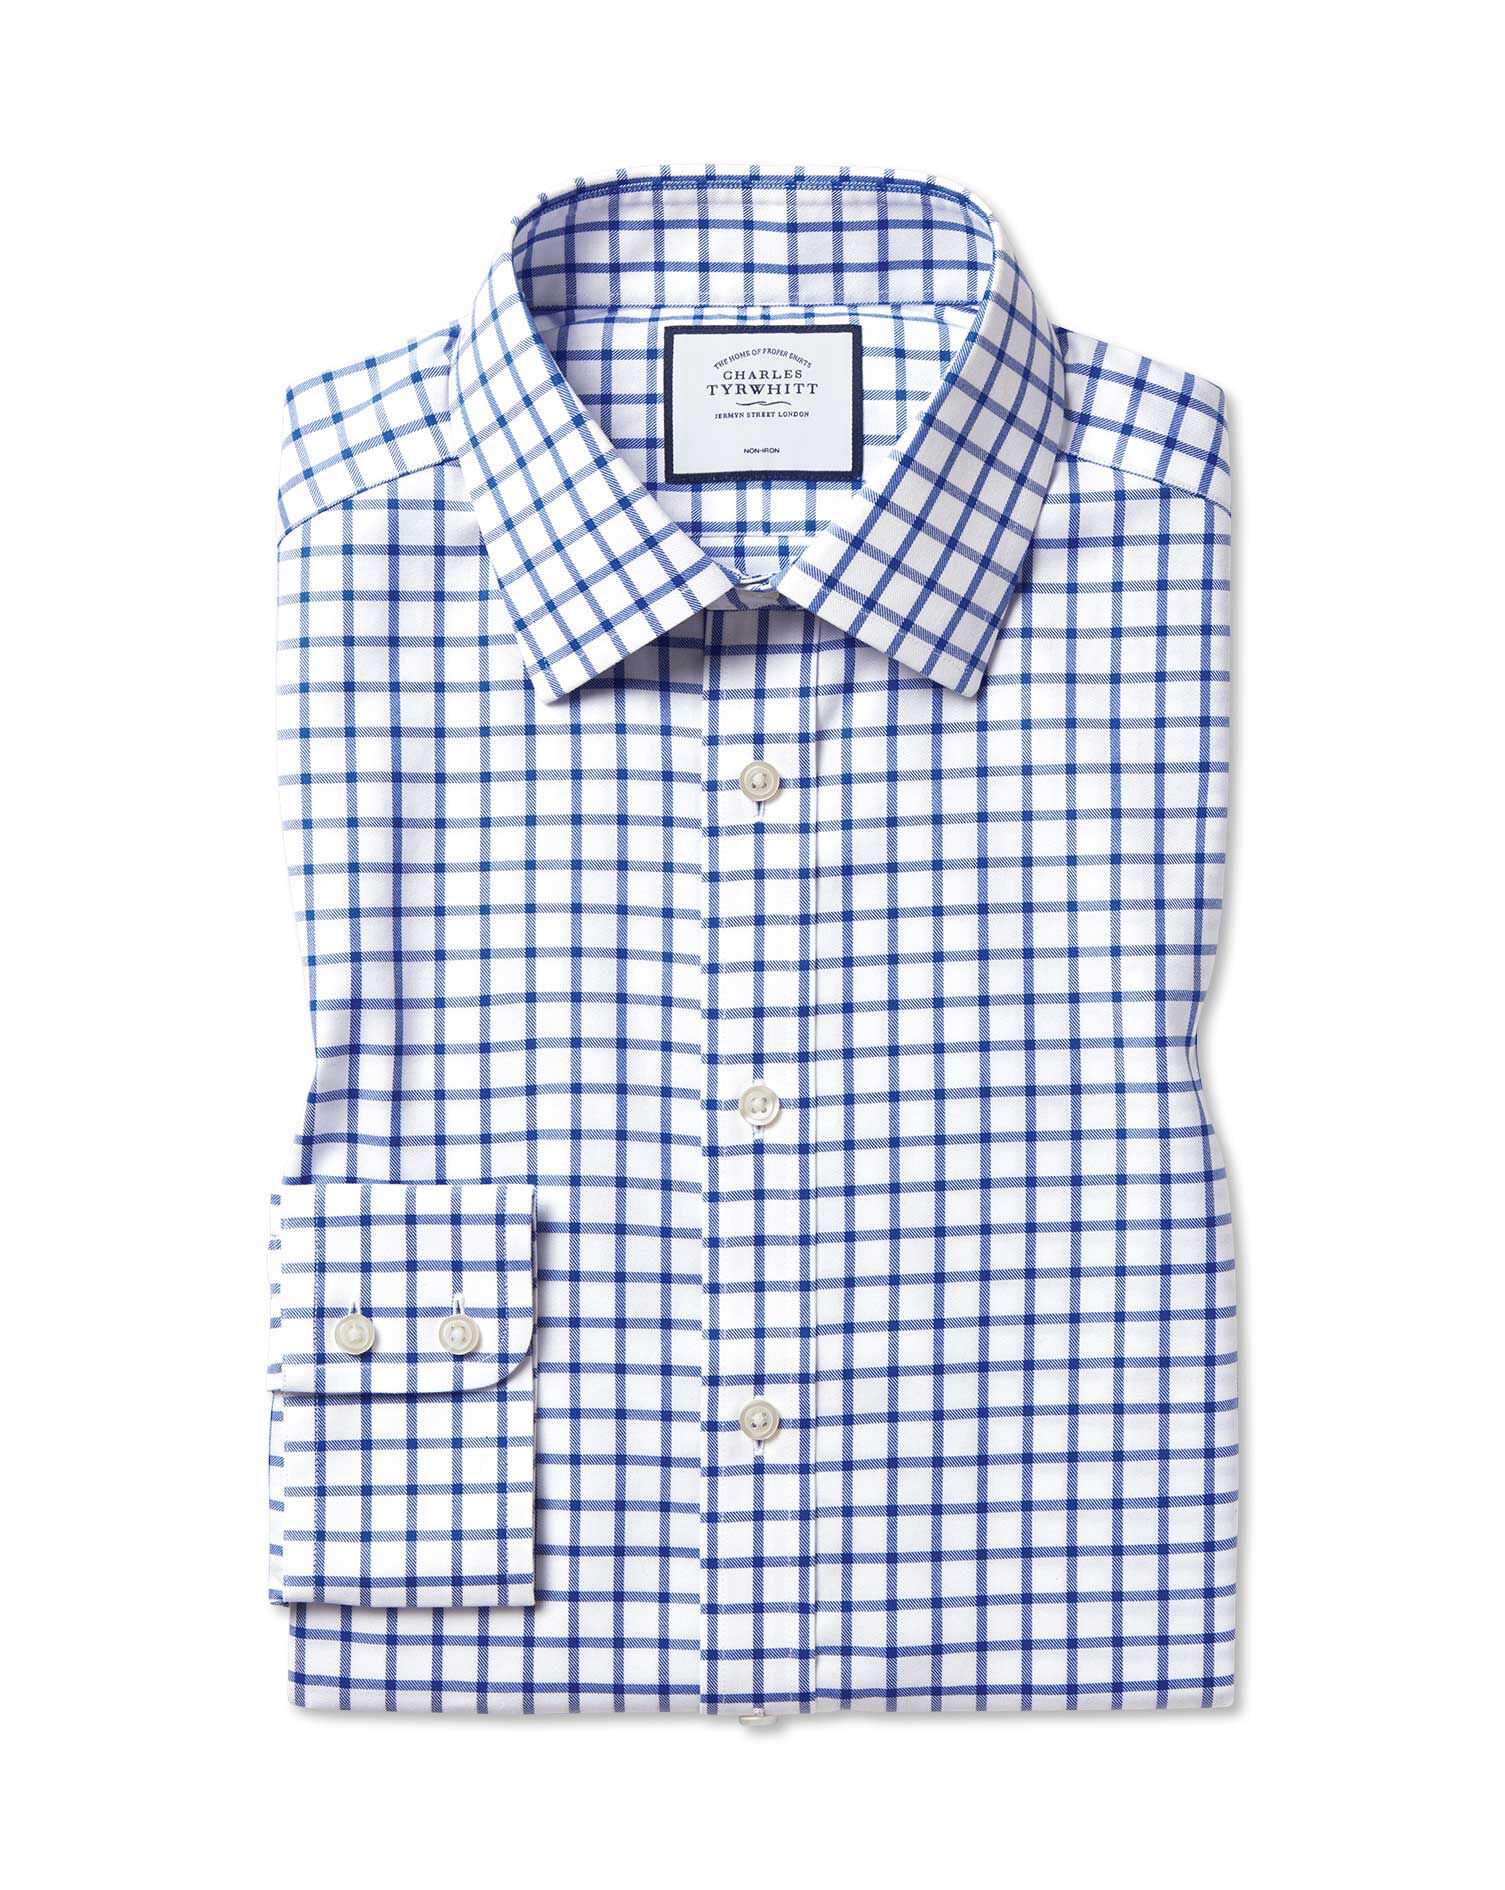 Slim Fit Non-Iron Twill Grid Check Royal Blue Cotton Formal Shirt Single Cuff Size 15.5/34 by Charle